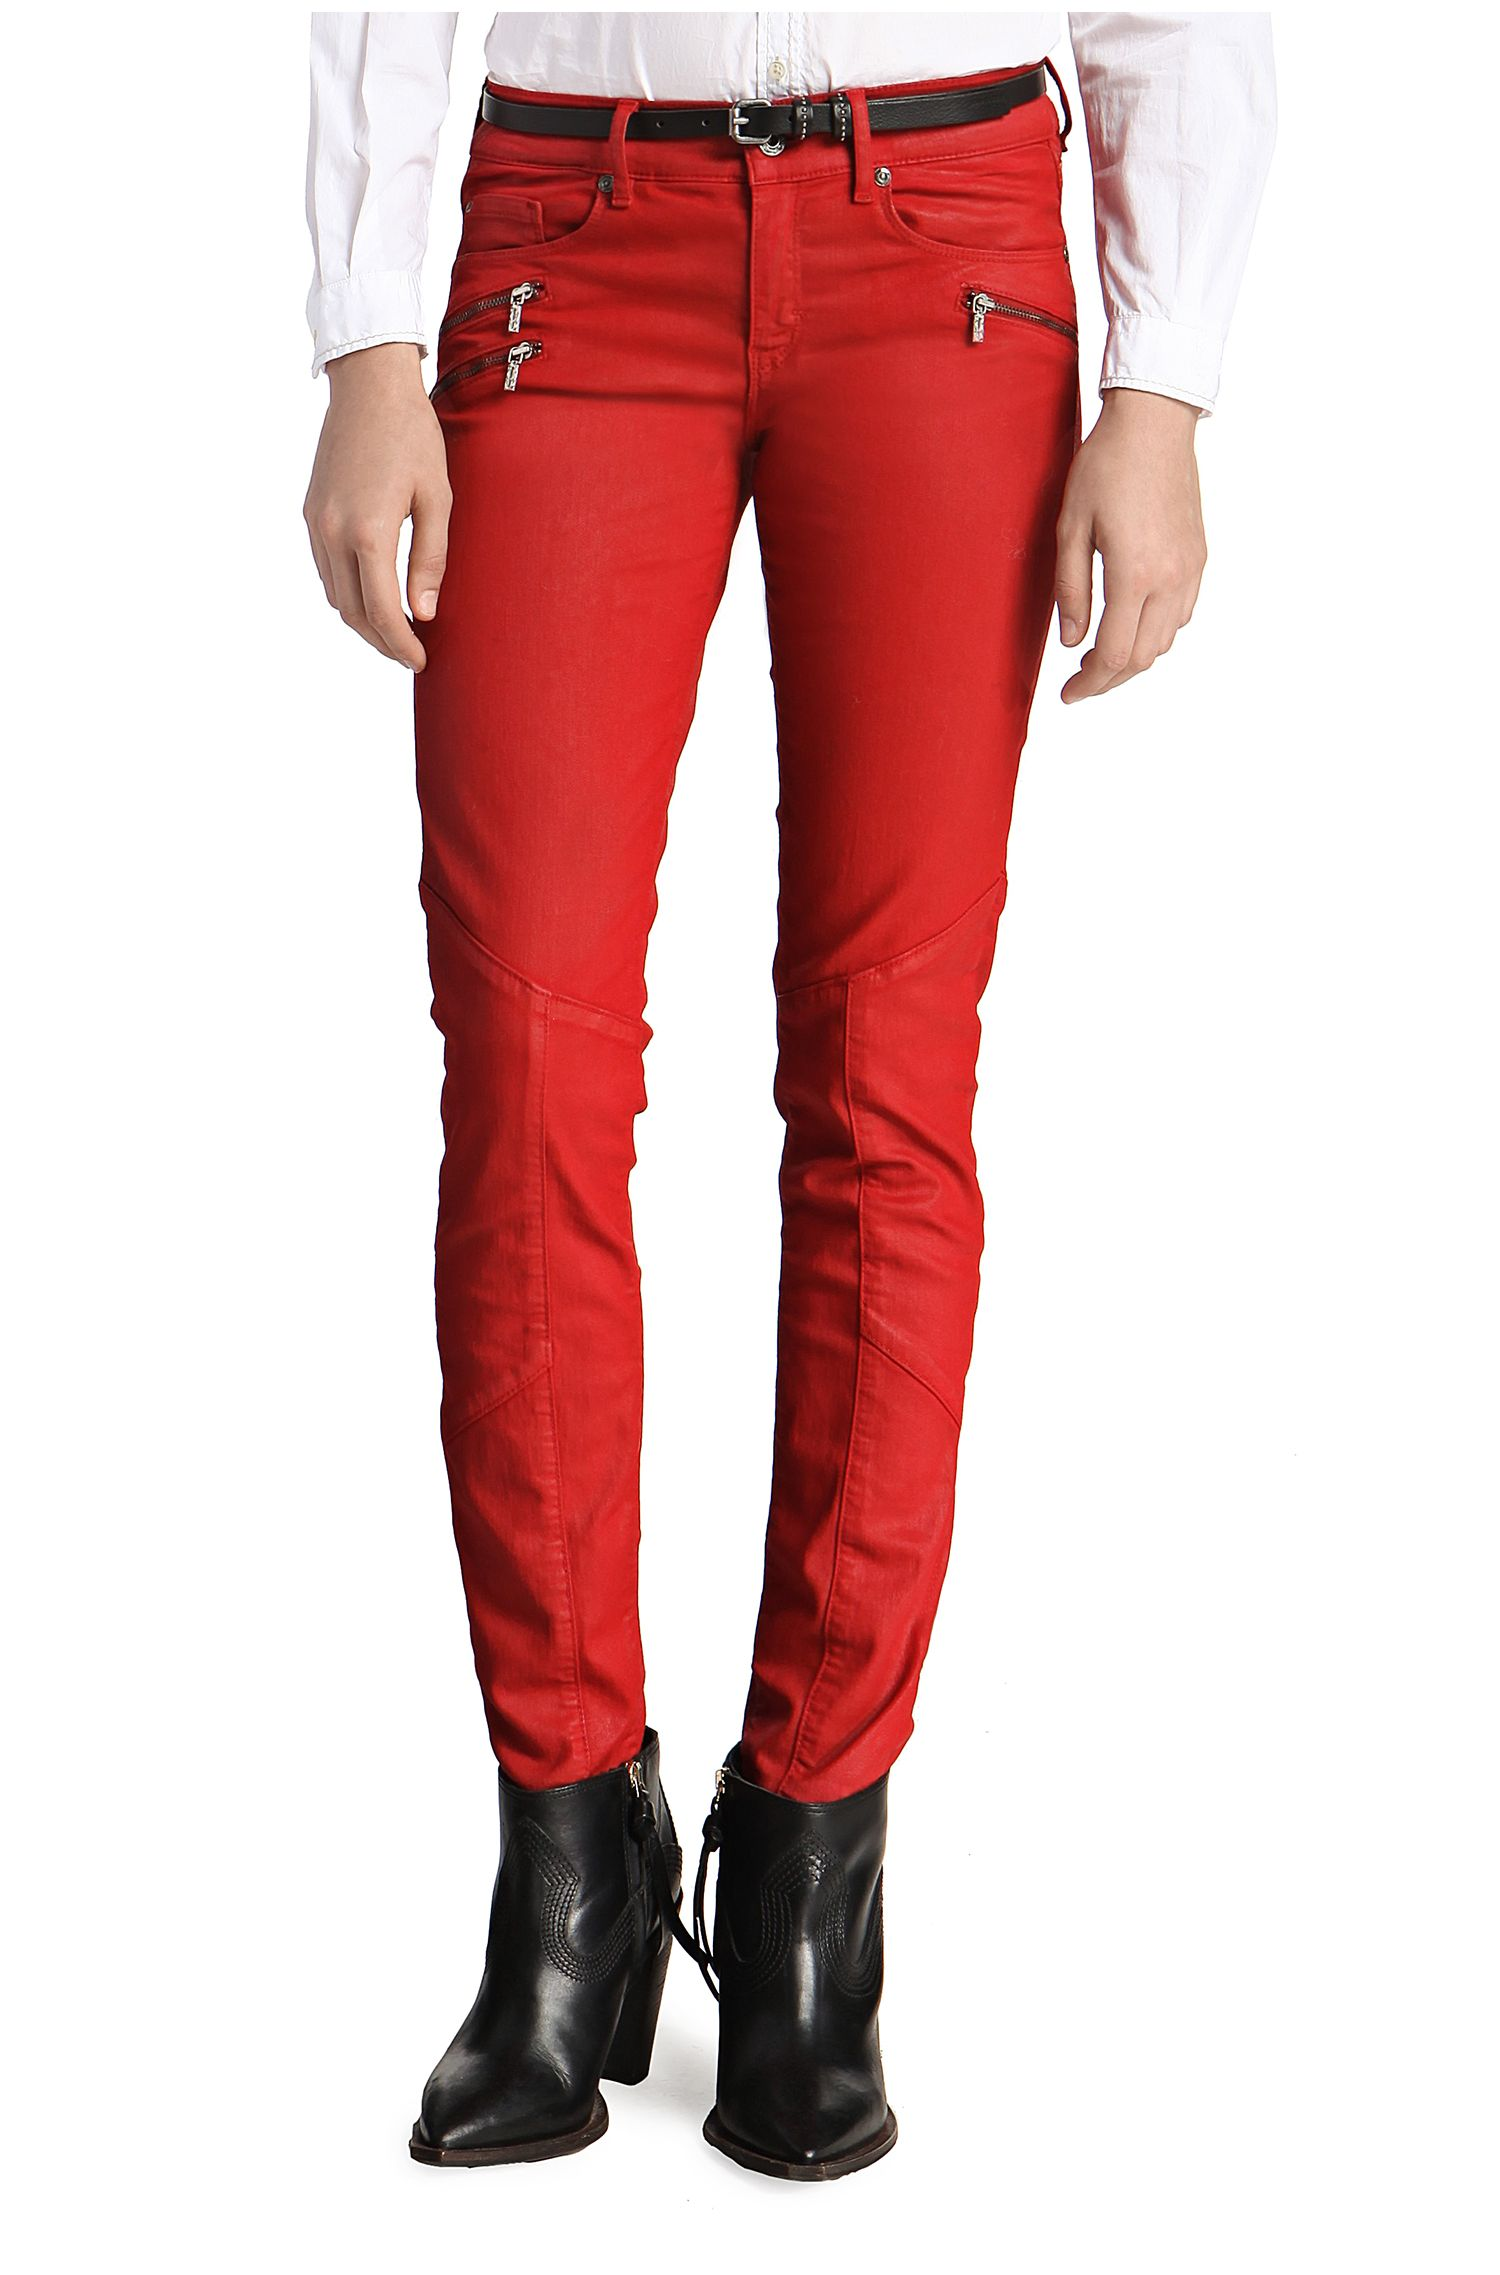 Slim-Fit Jeans ´Orange J20 London` mit Beschichtung